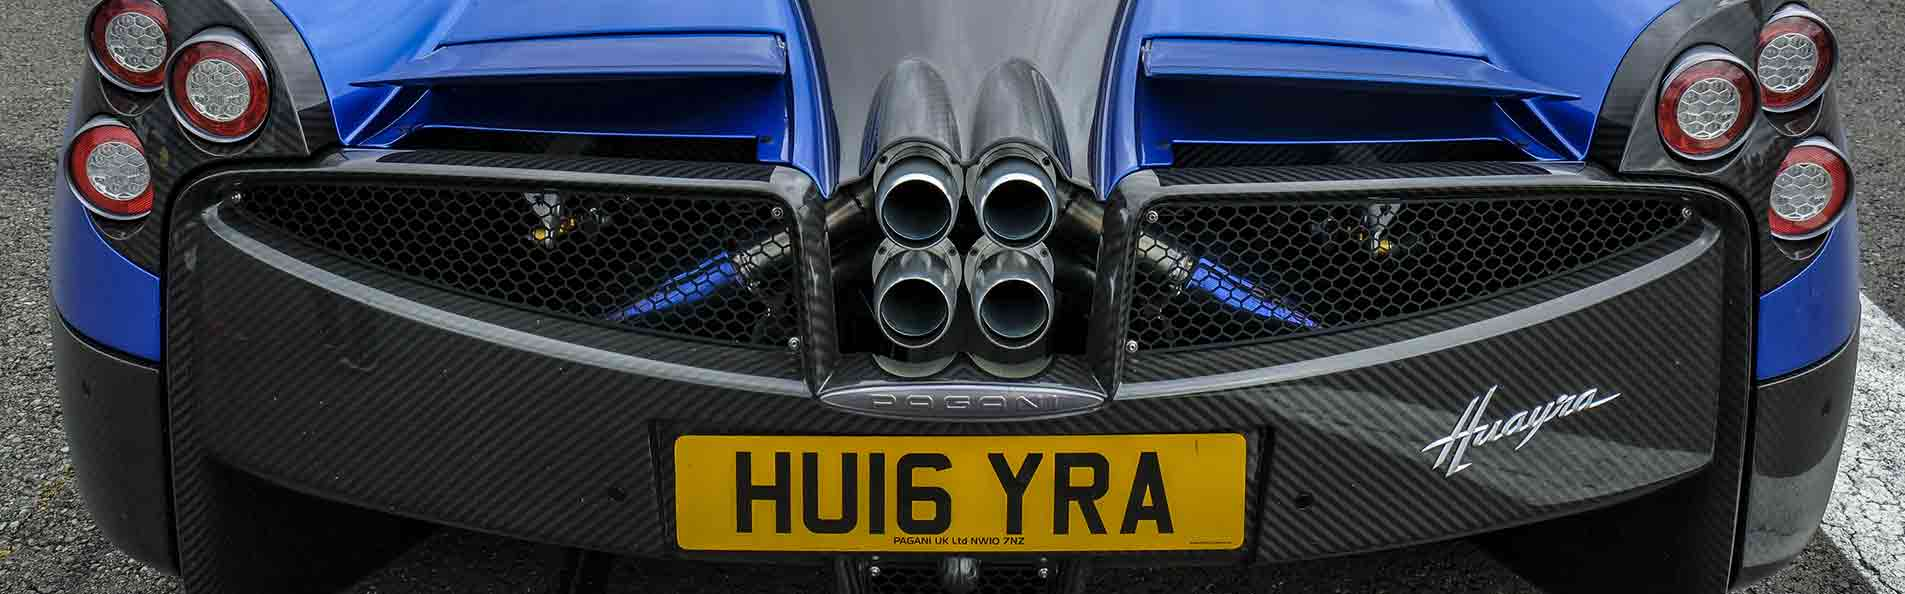 The Pagani Huayra Hypercar at The Supercar Event